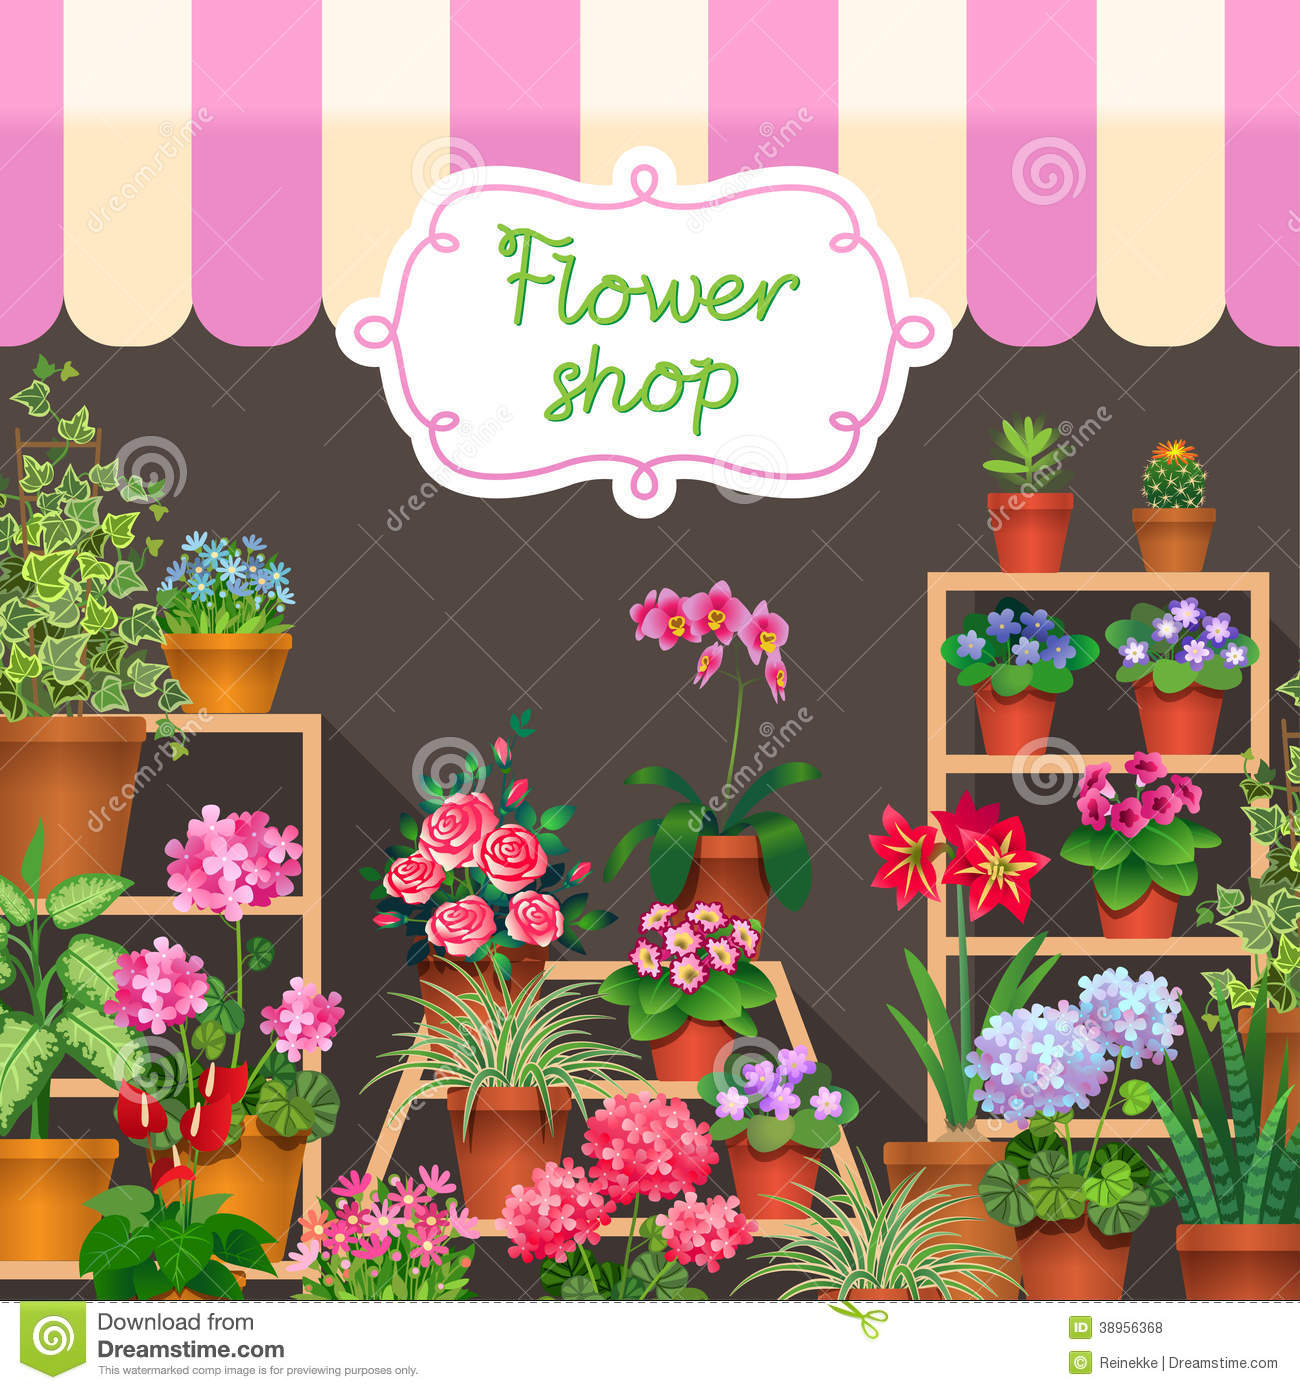 http://thumbs.dreamstime.com/z/flower-shop-houseplants-show-window-vector-illustration-38956368.jpg